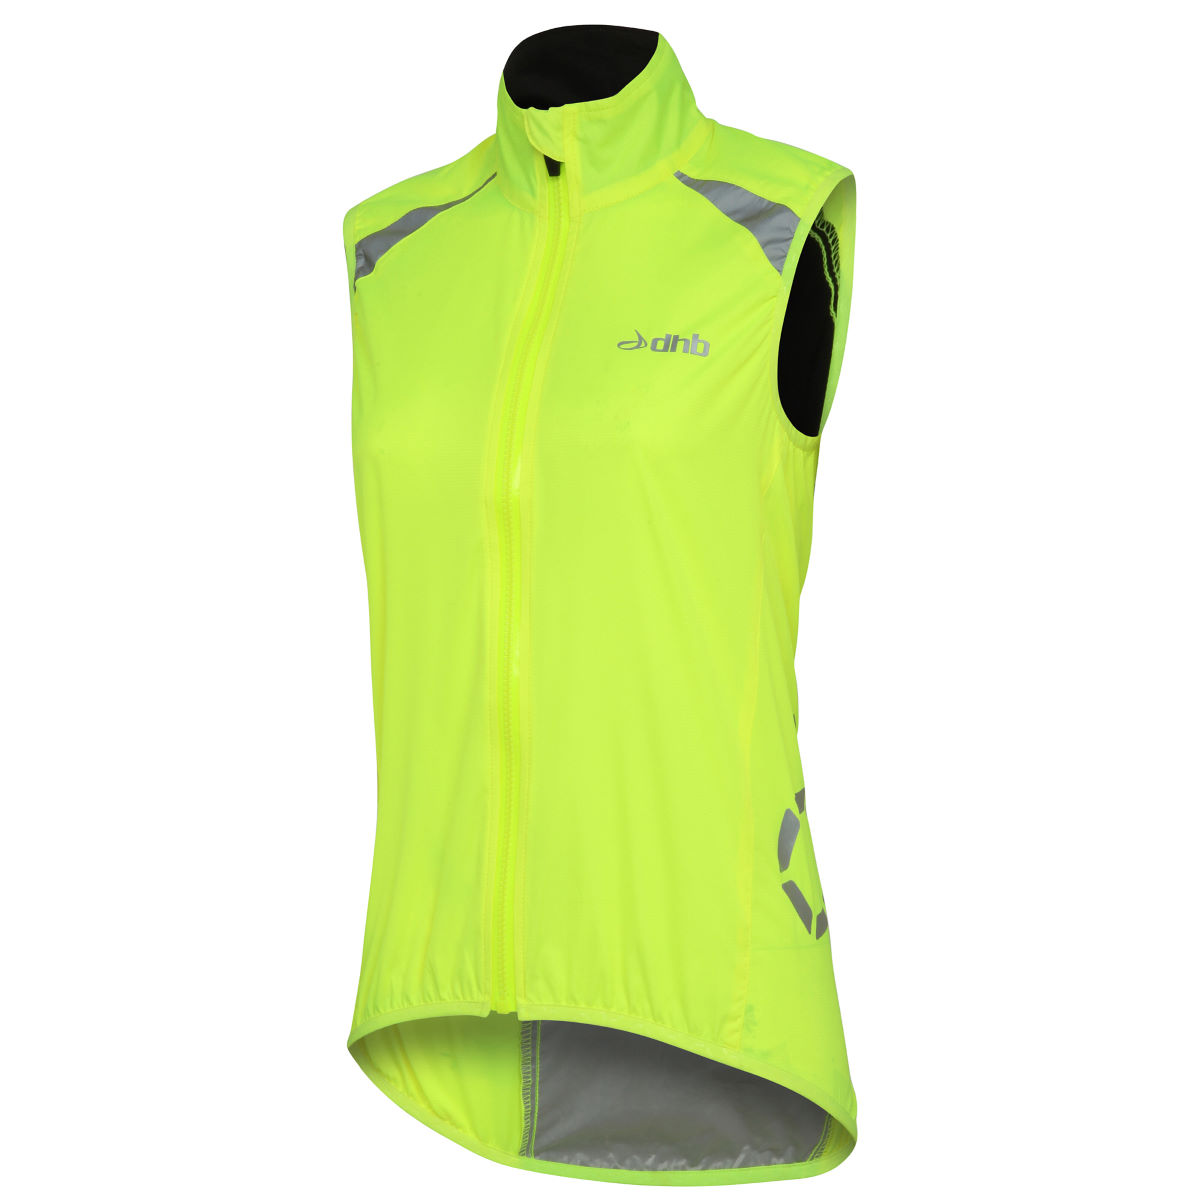 Gilet Femme dhb Flashlight (coupe-vent, sans manches) - 12 UK